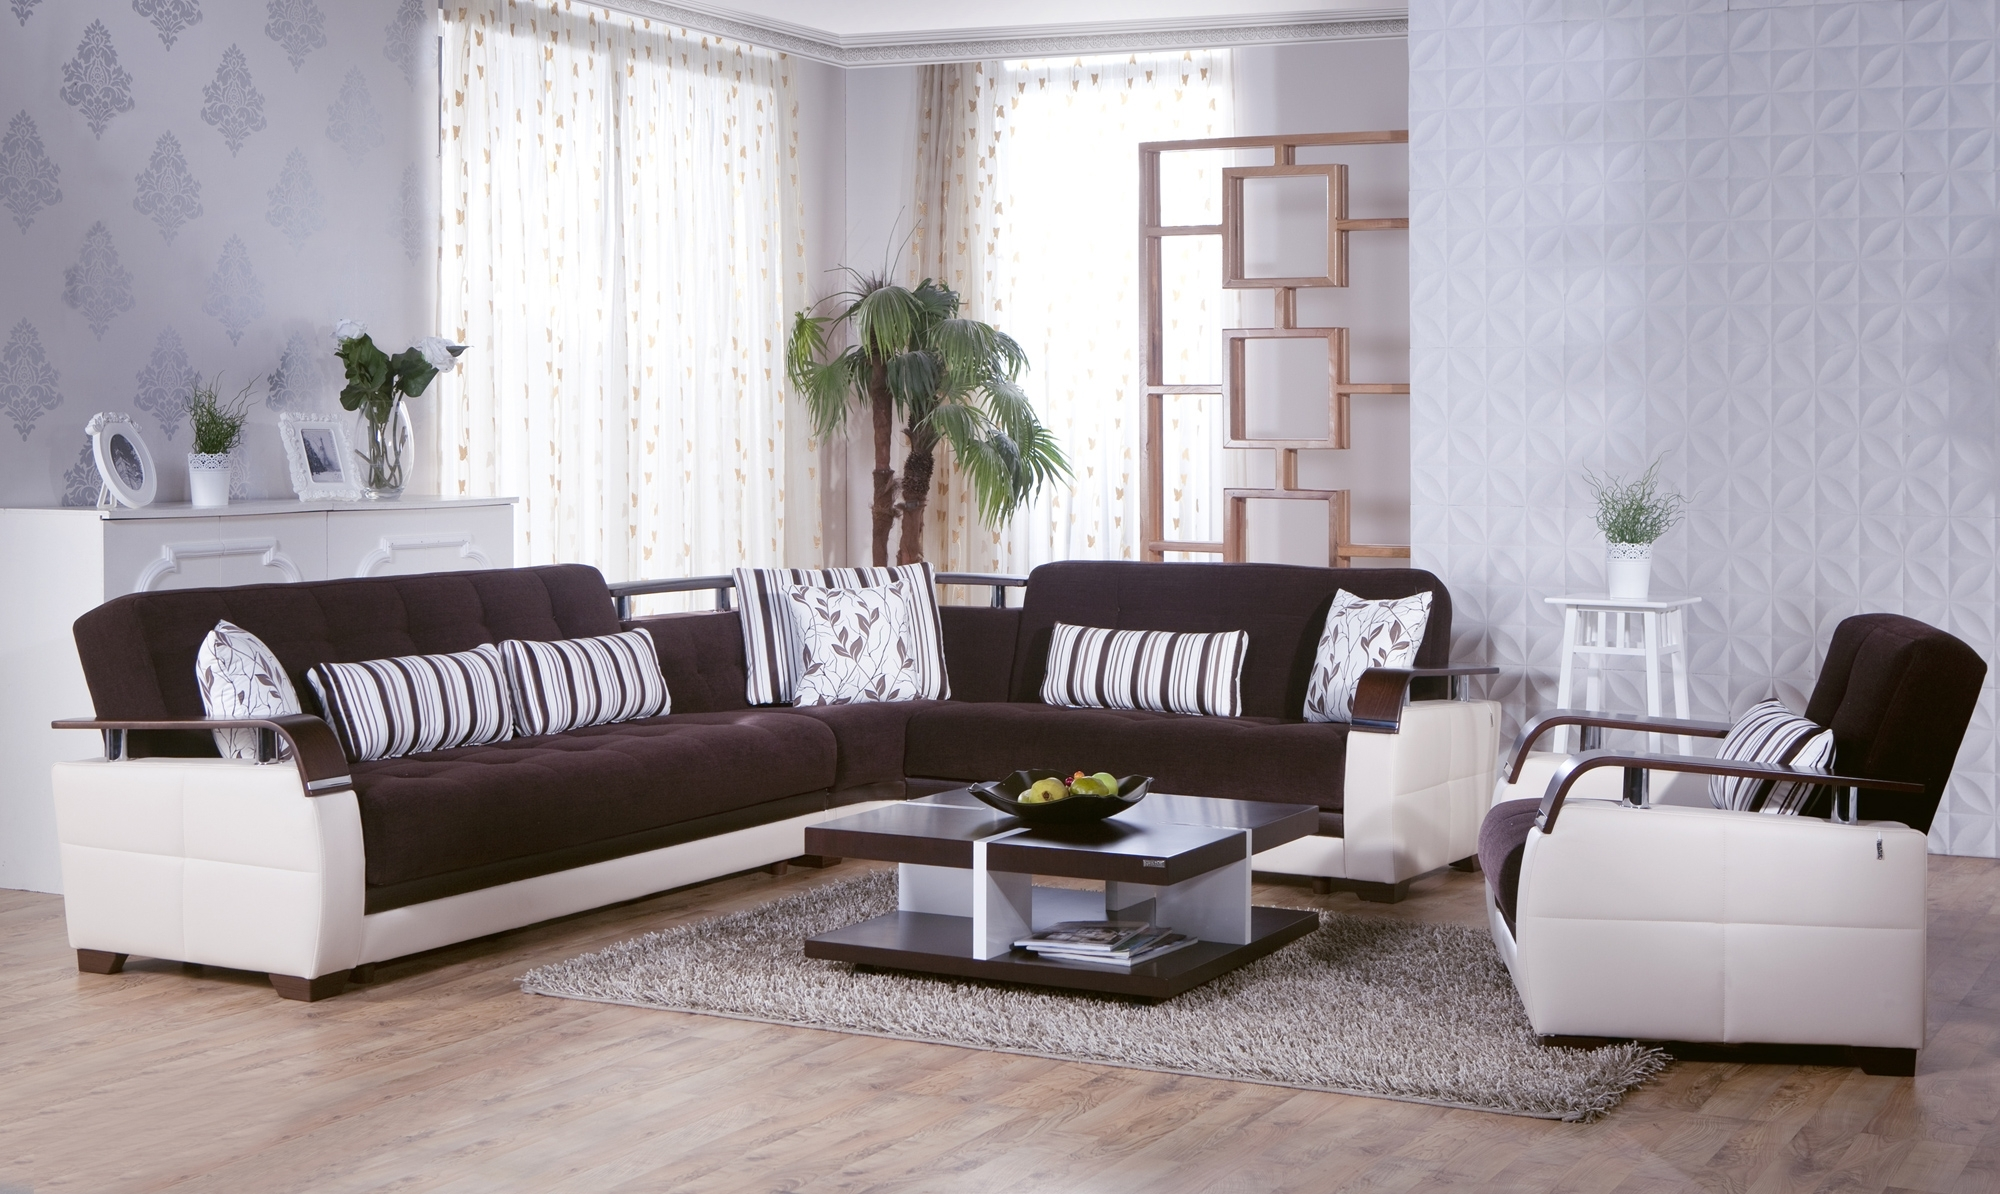 Natural Colins Brown Sectional Sofasunset | Brown Sectional Sofa With Regard To El Dorado Sectional Sofas (View 8 of 10)